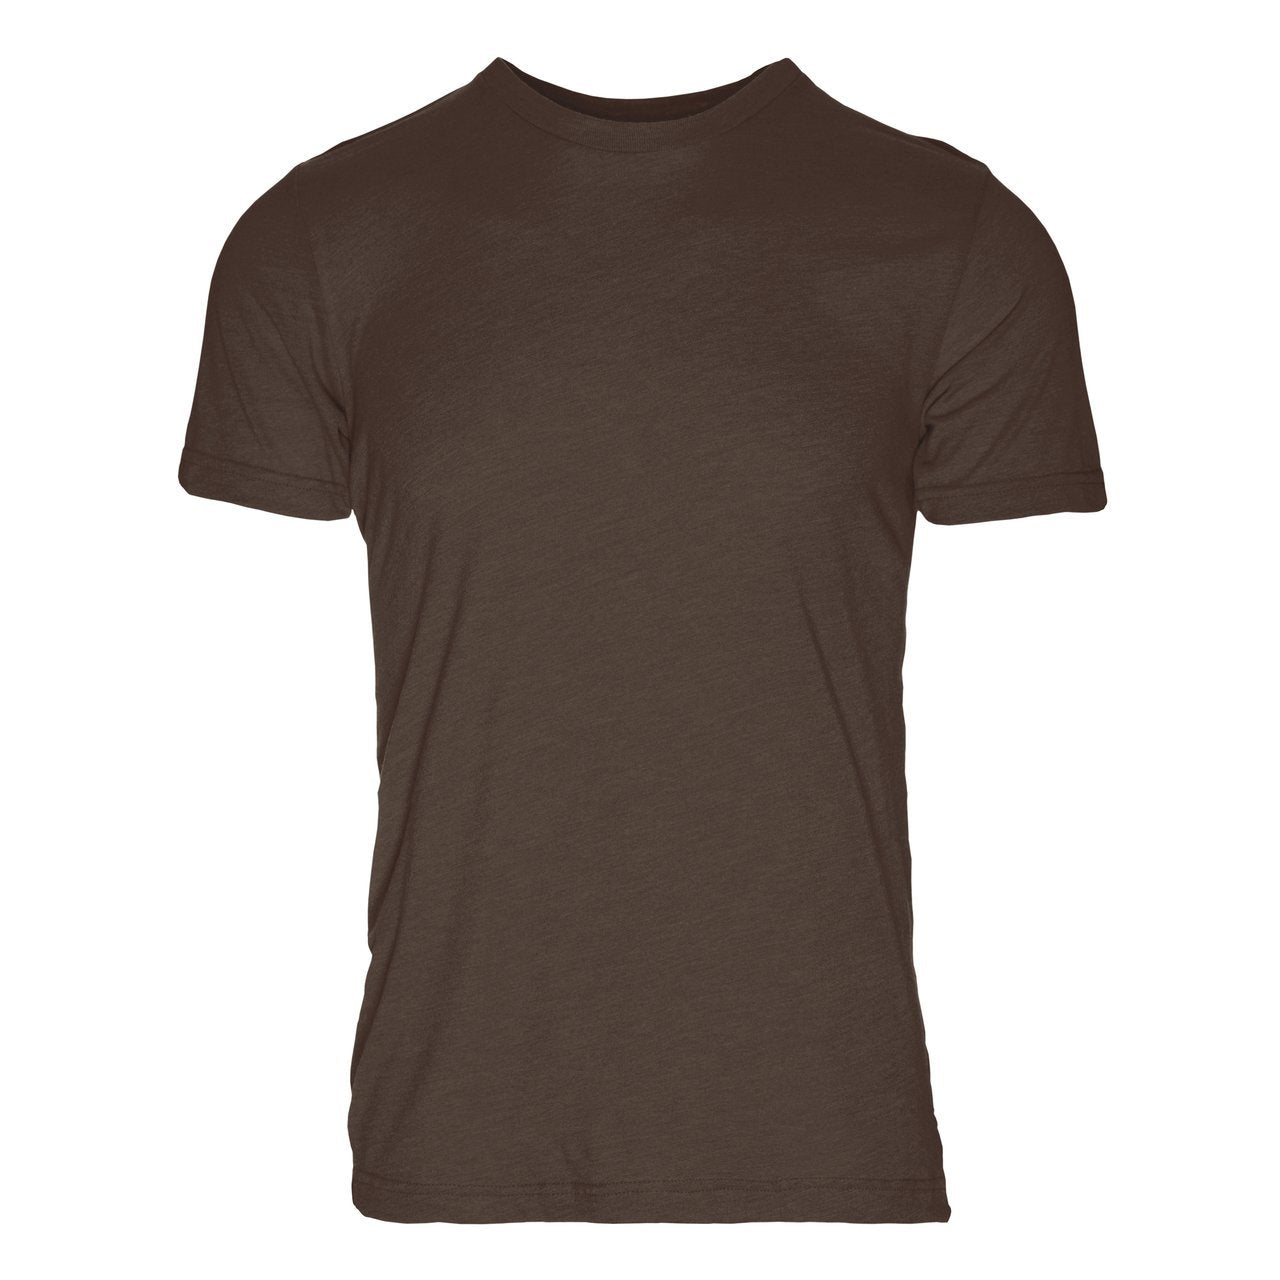 PC100BN Eco REPREVE® Recycled Polyester/Cotton Crew T-Shirt - Brown